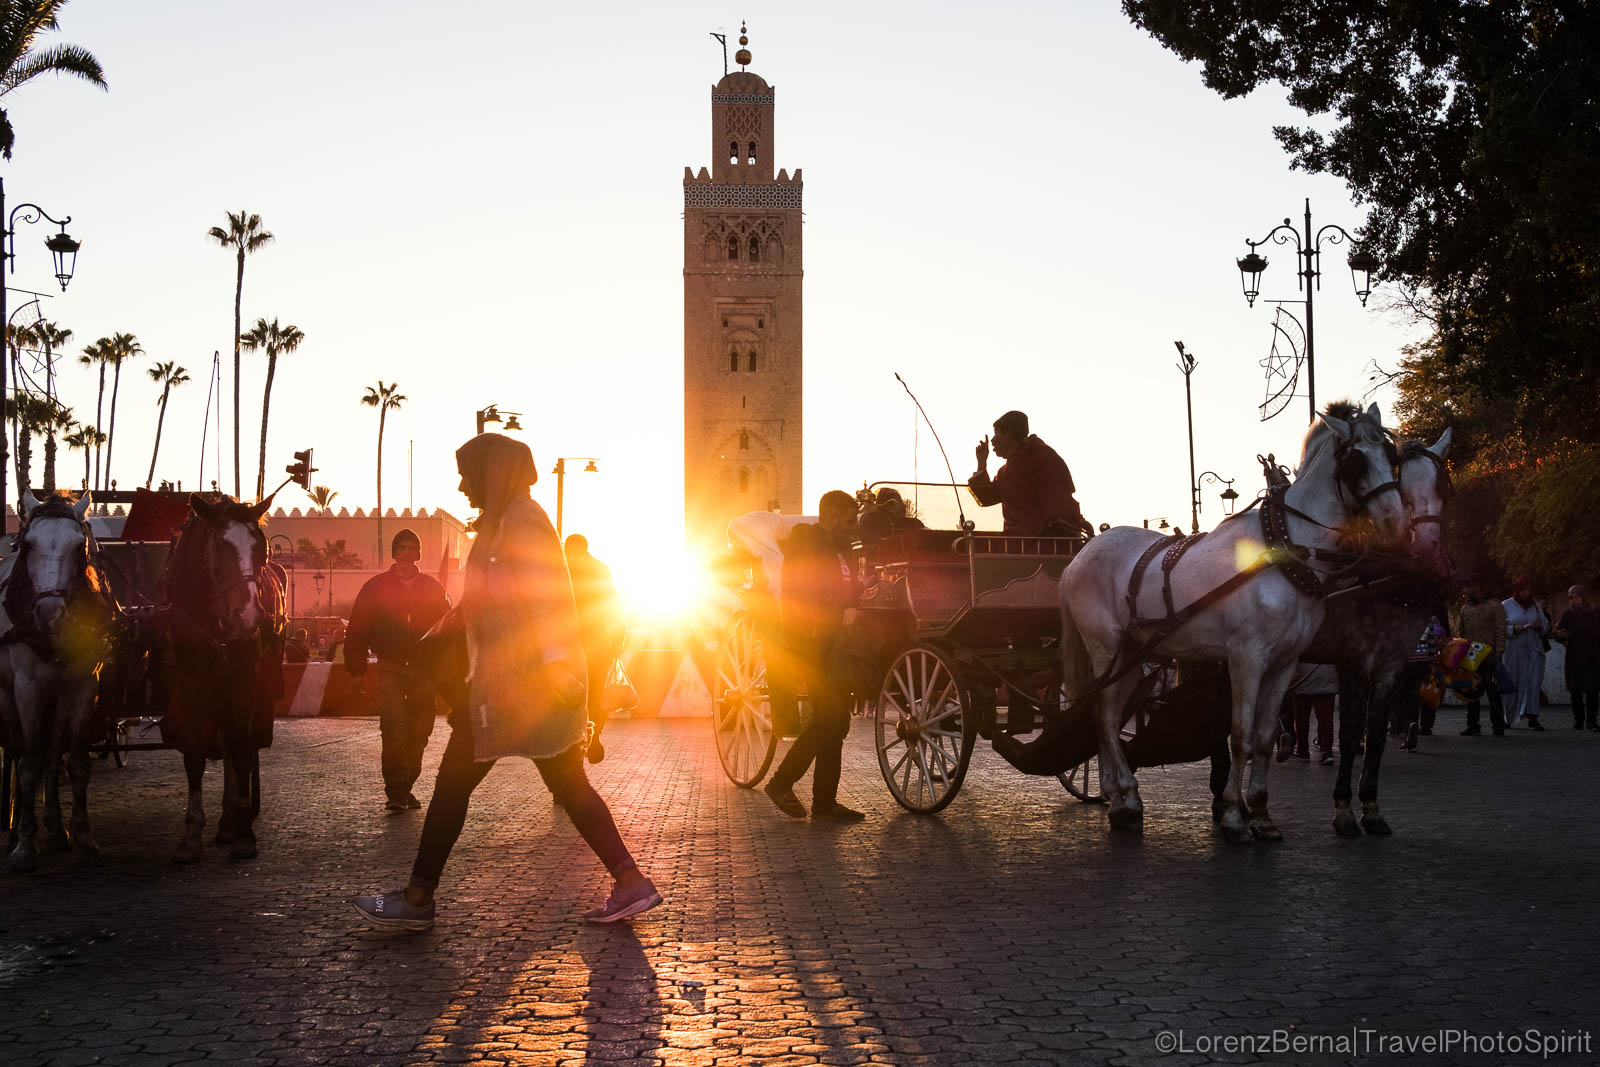 Street scene at sunset in front of the Koutoubia mosque in Marrakech